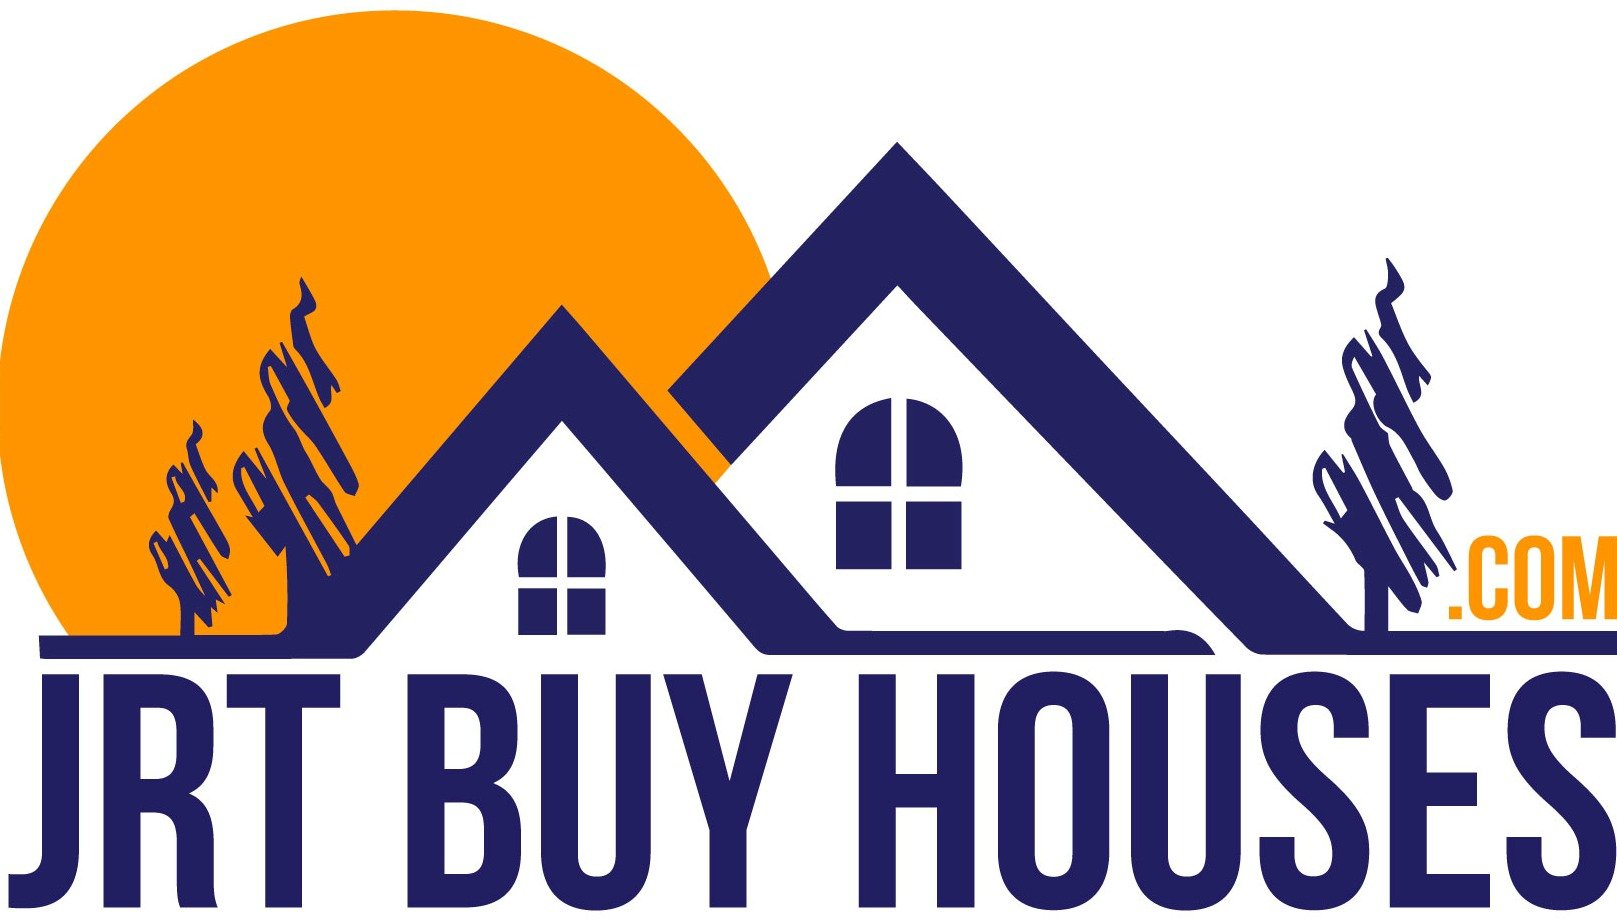 We Buy Houses South Florida logo